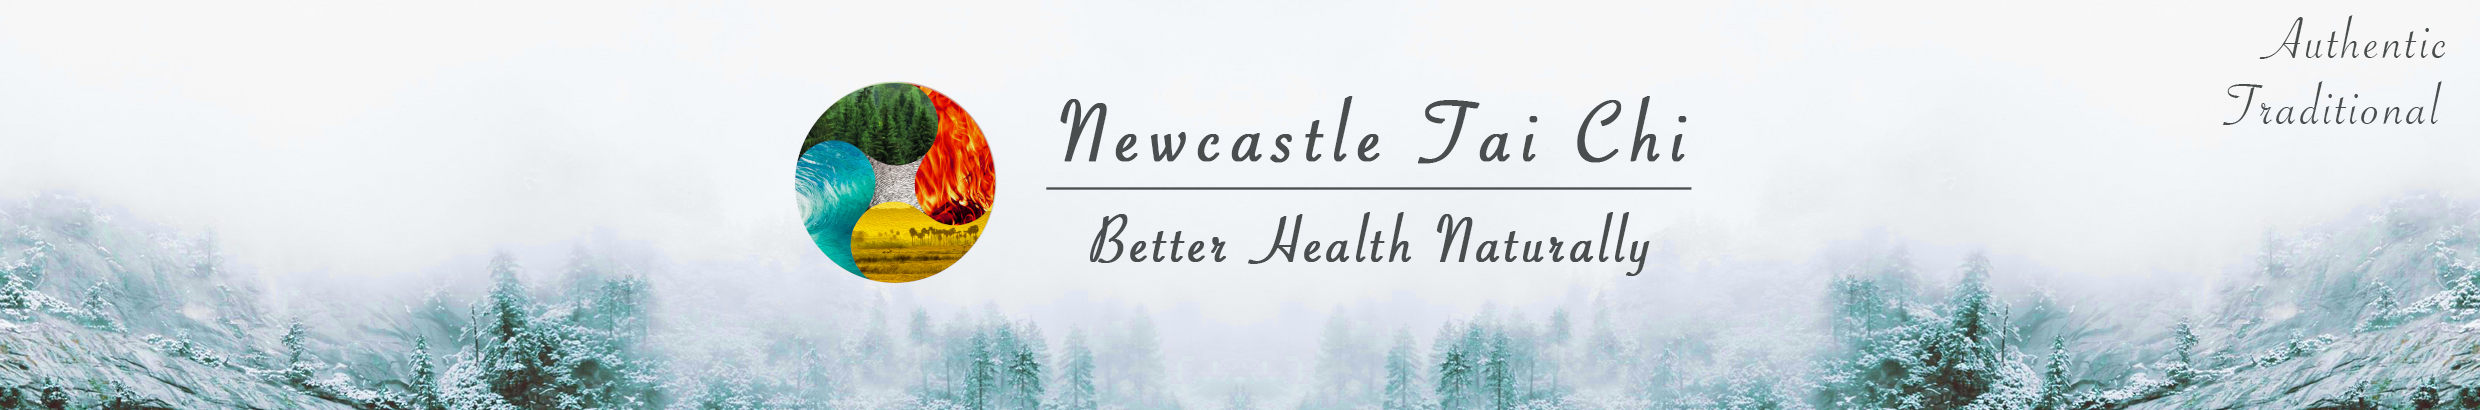 Newcastle Tai Chi